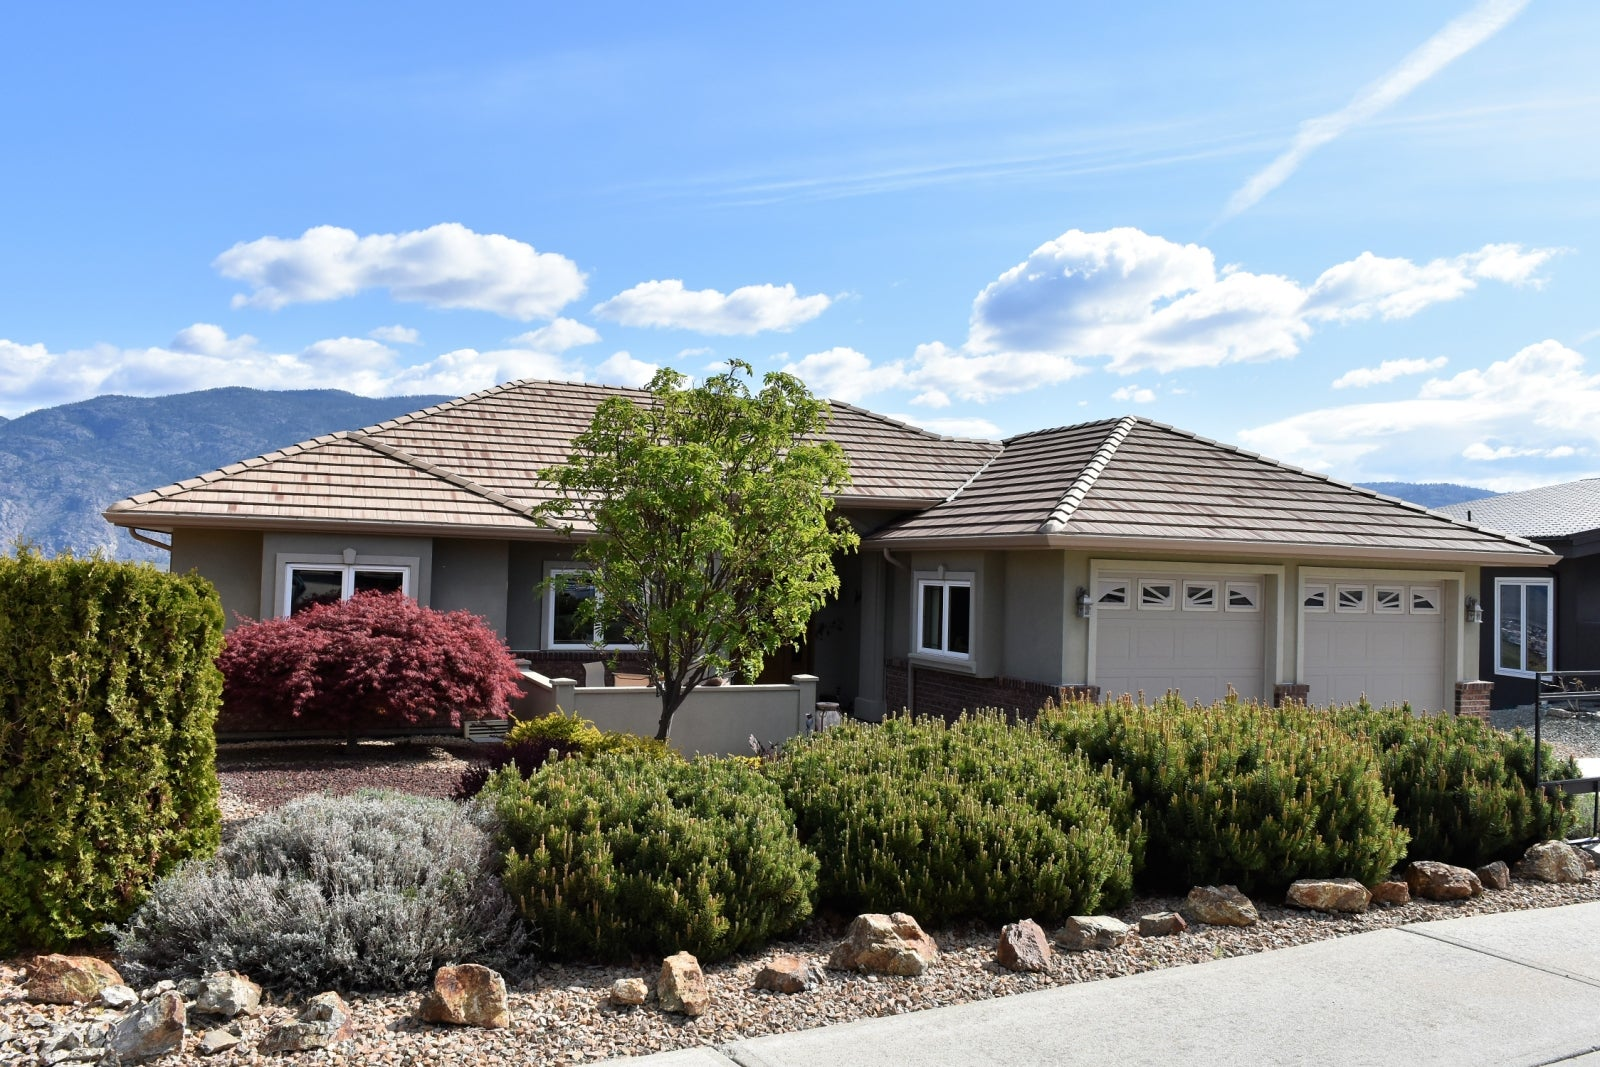 11715 Olympic View Drive - Osoyoos Single Family for sale, 4 Bedrooms (176846) #2